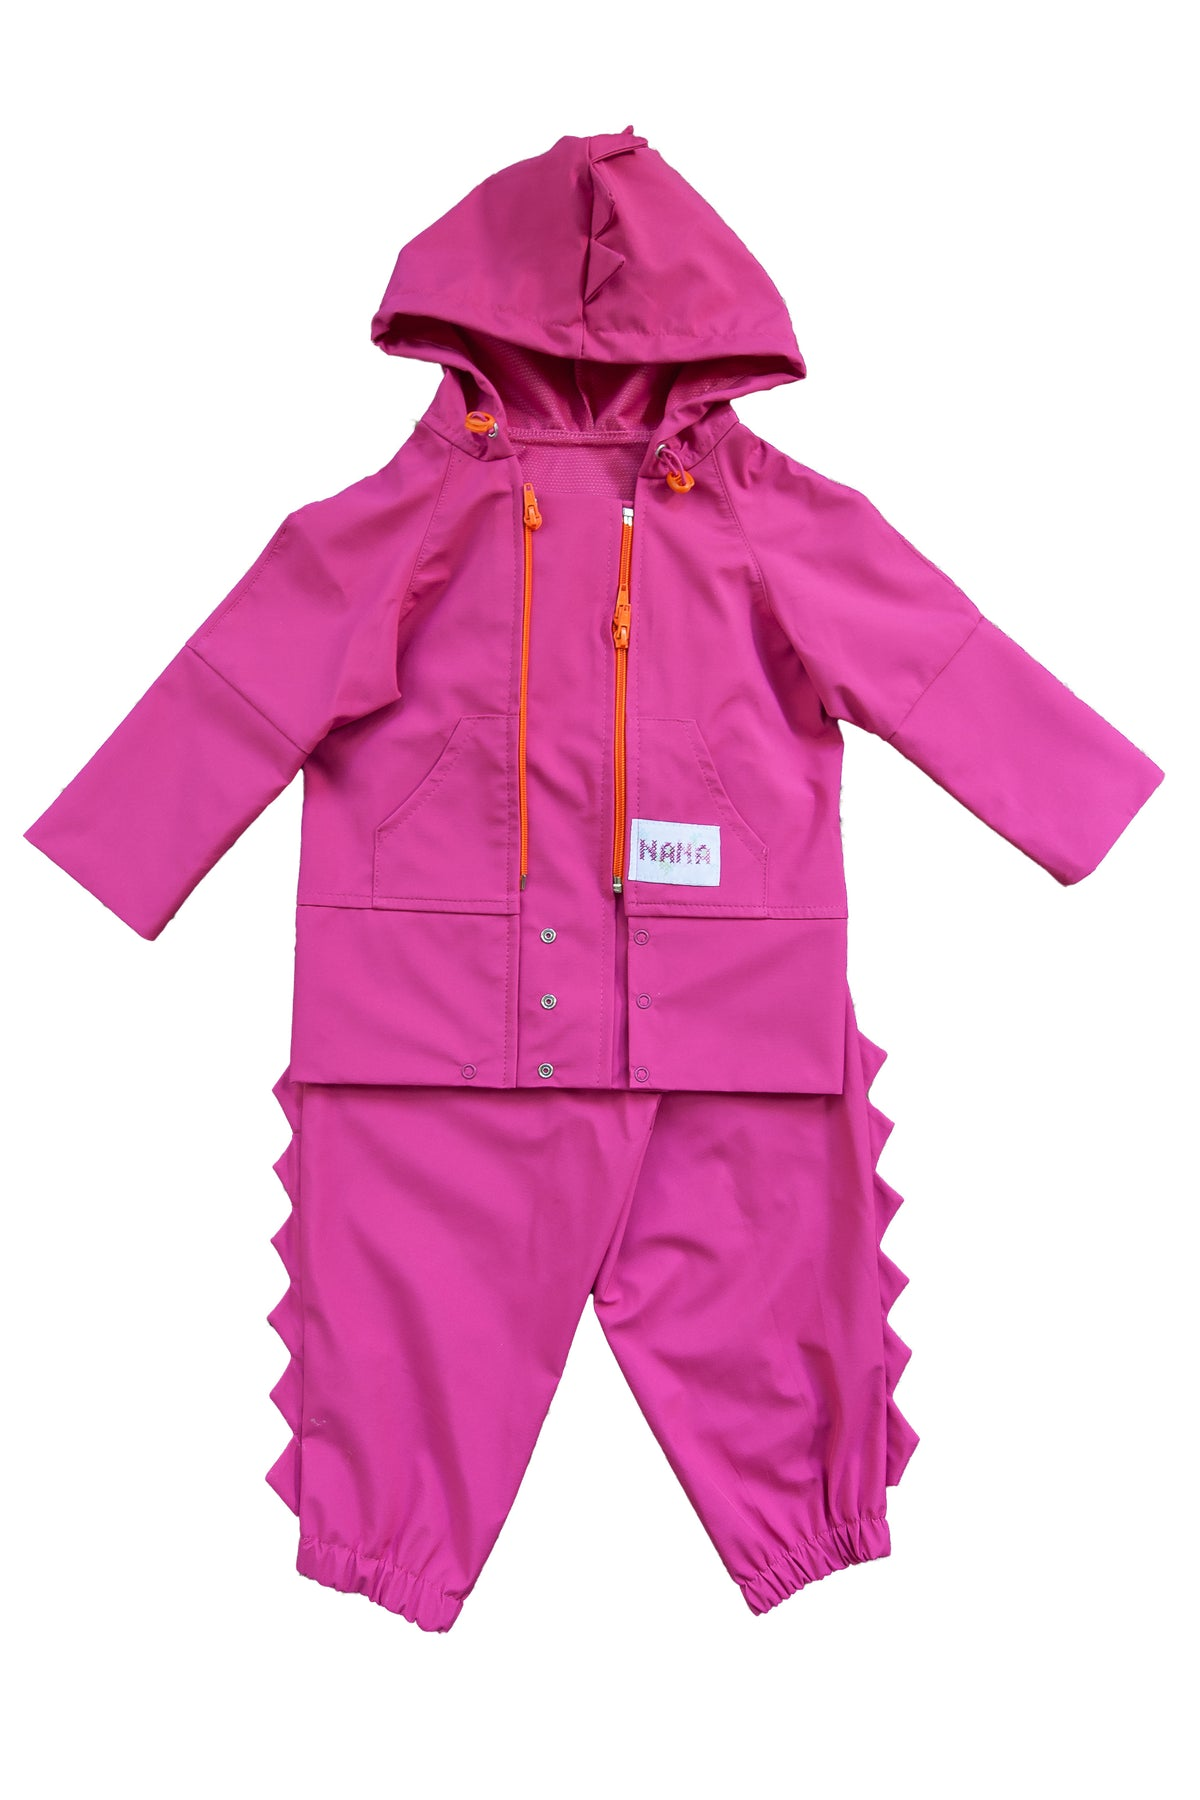 Kids Softshell Dungarees Pink Carry Me Wear With Hood 10